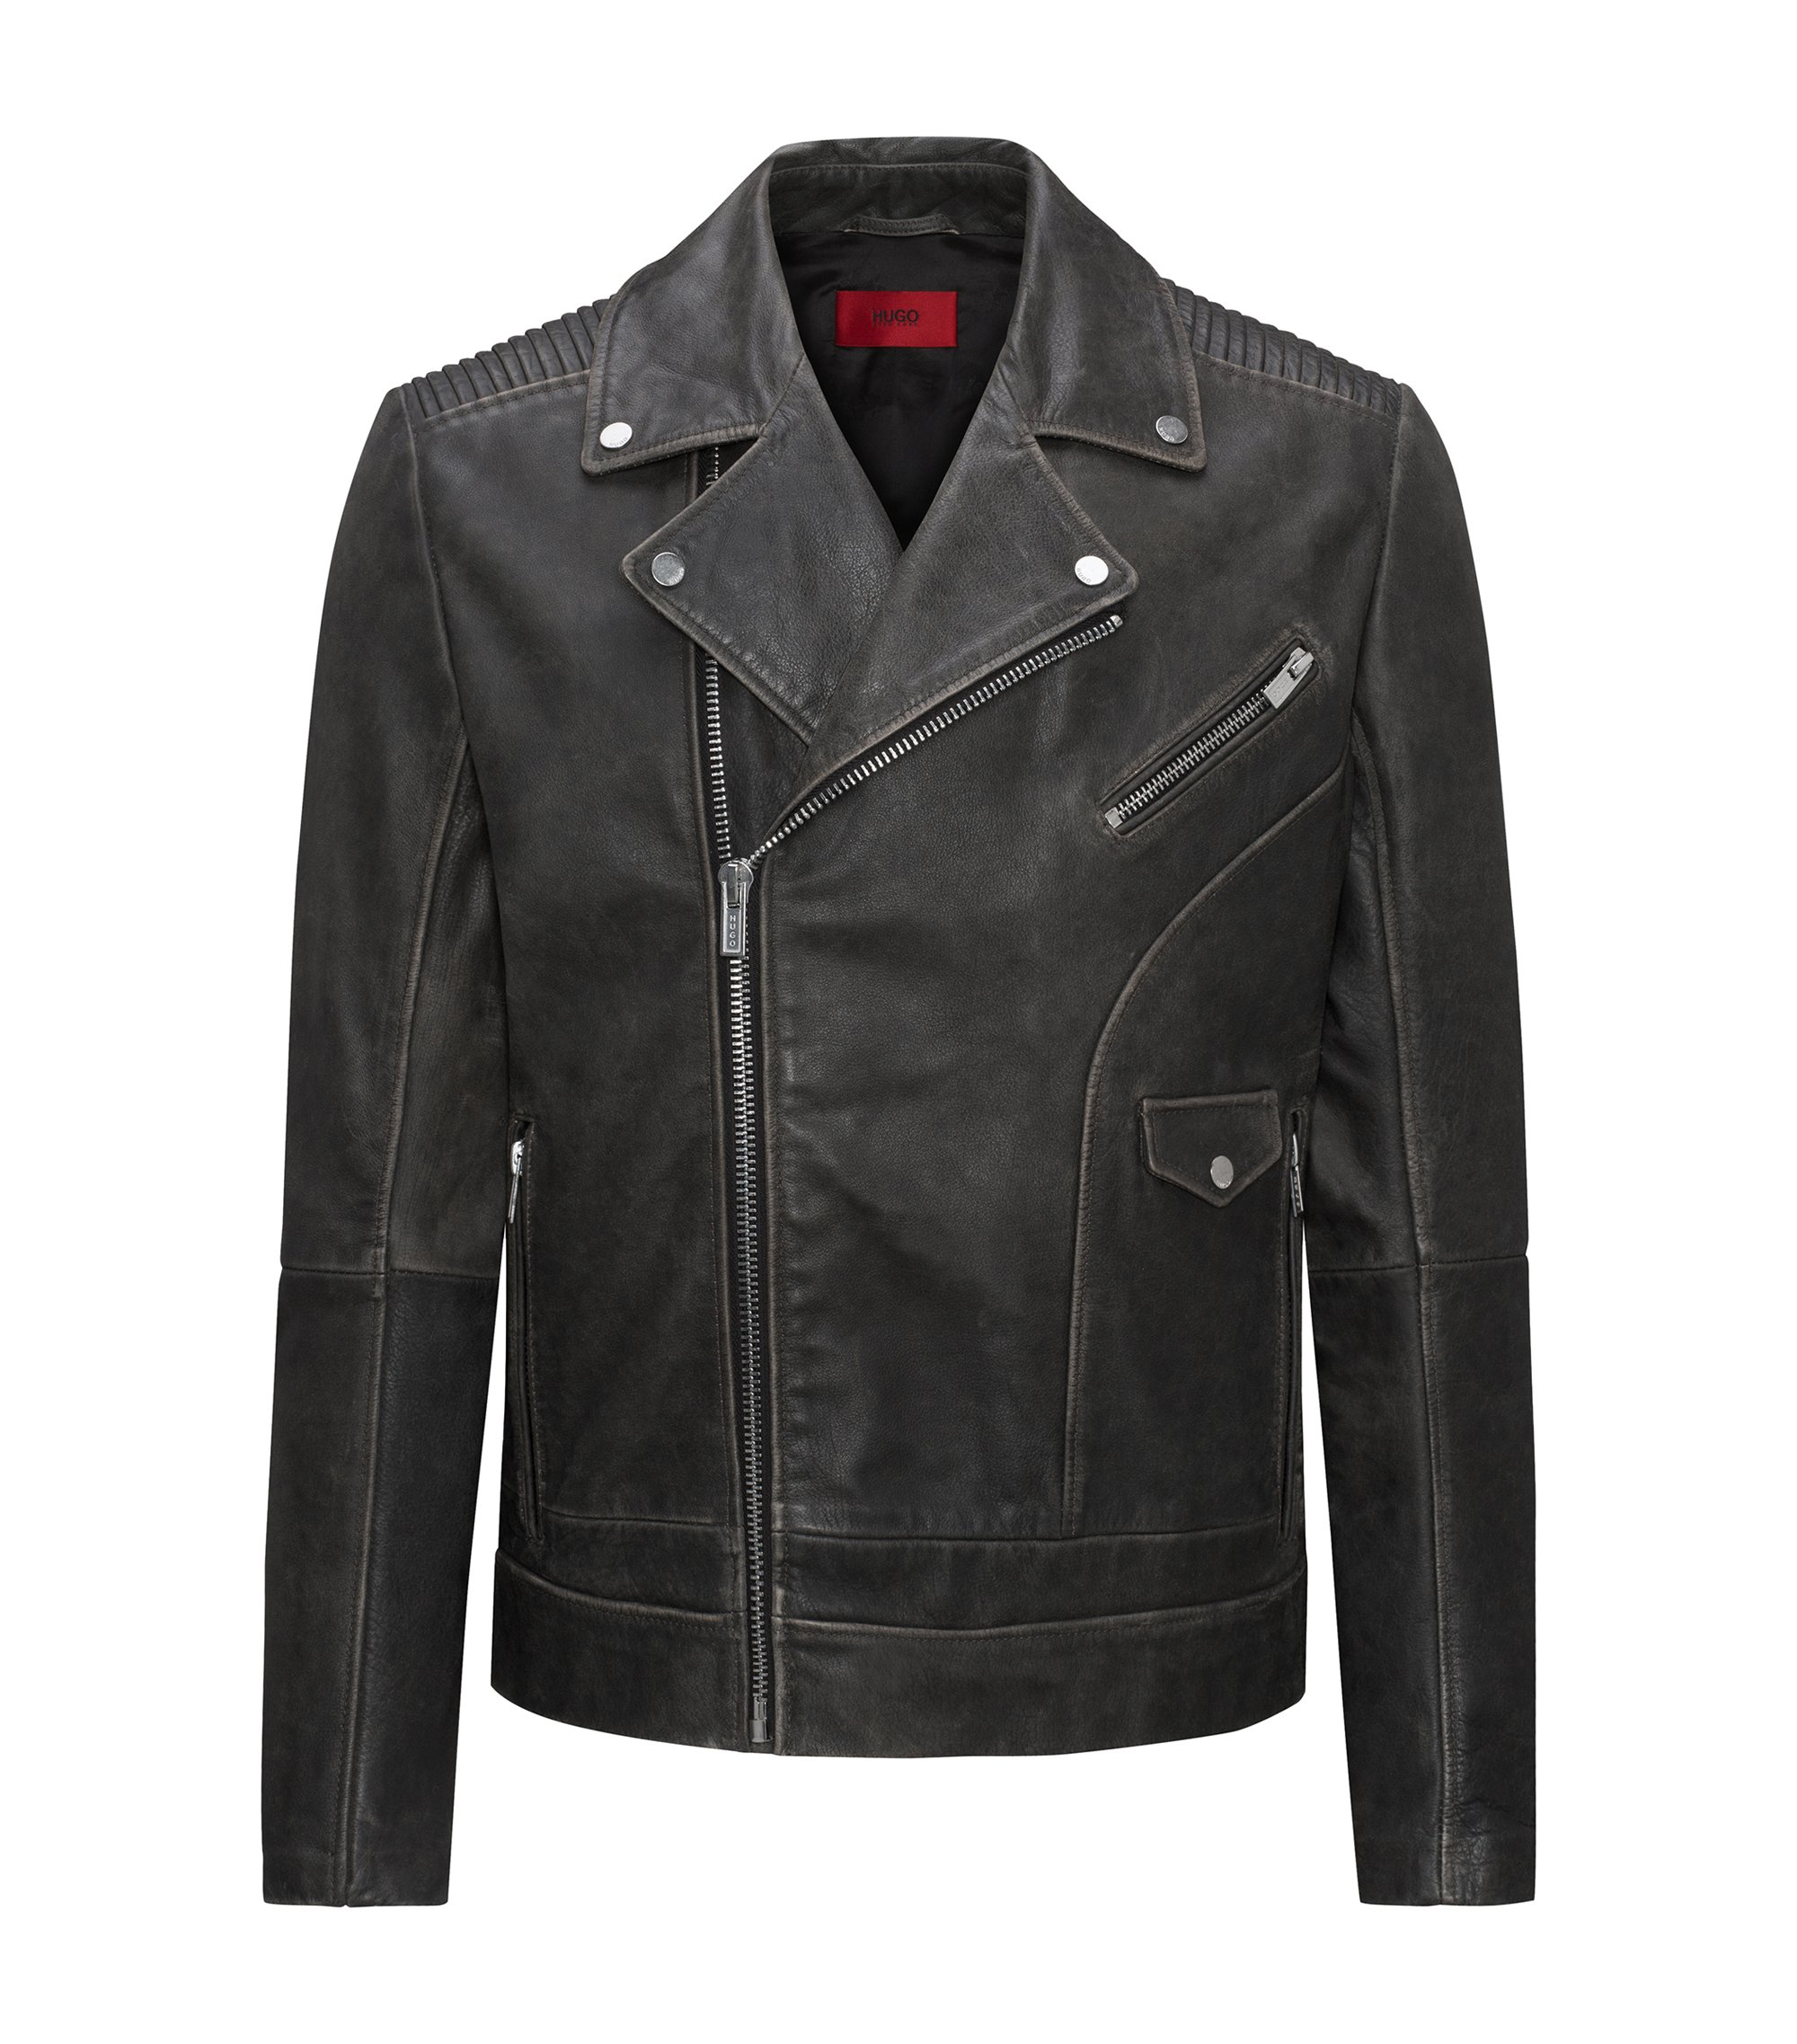 Giubbotto biker relaxed fit in pelle di vitello nappa, Nero